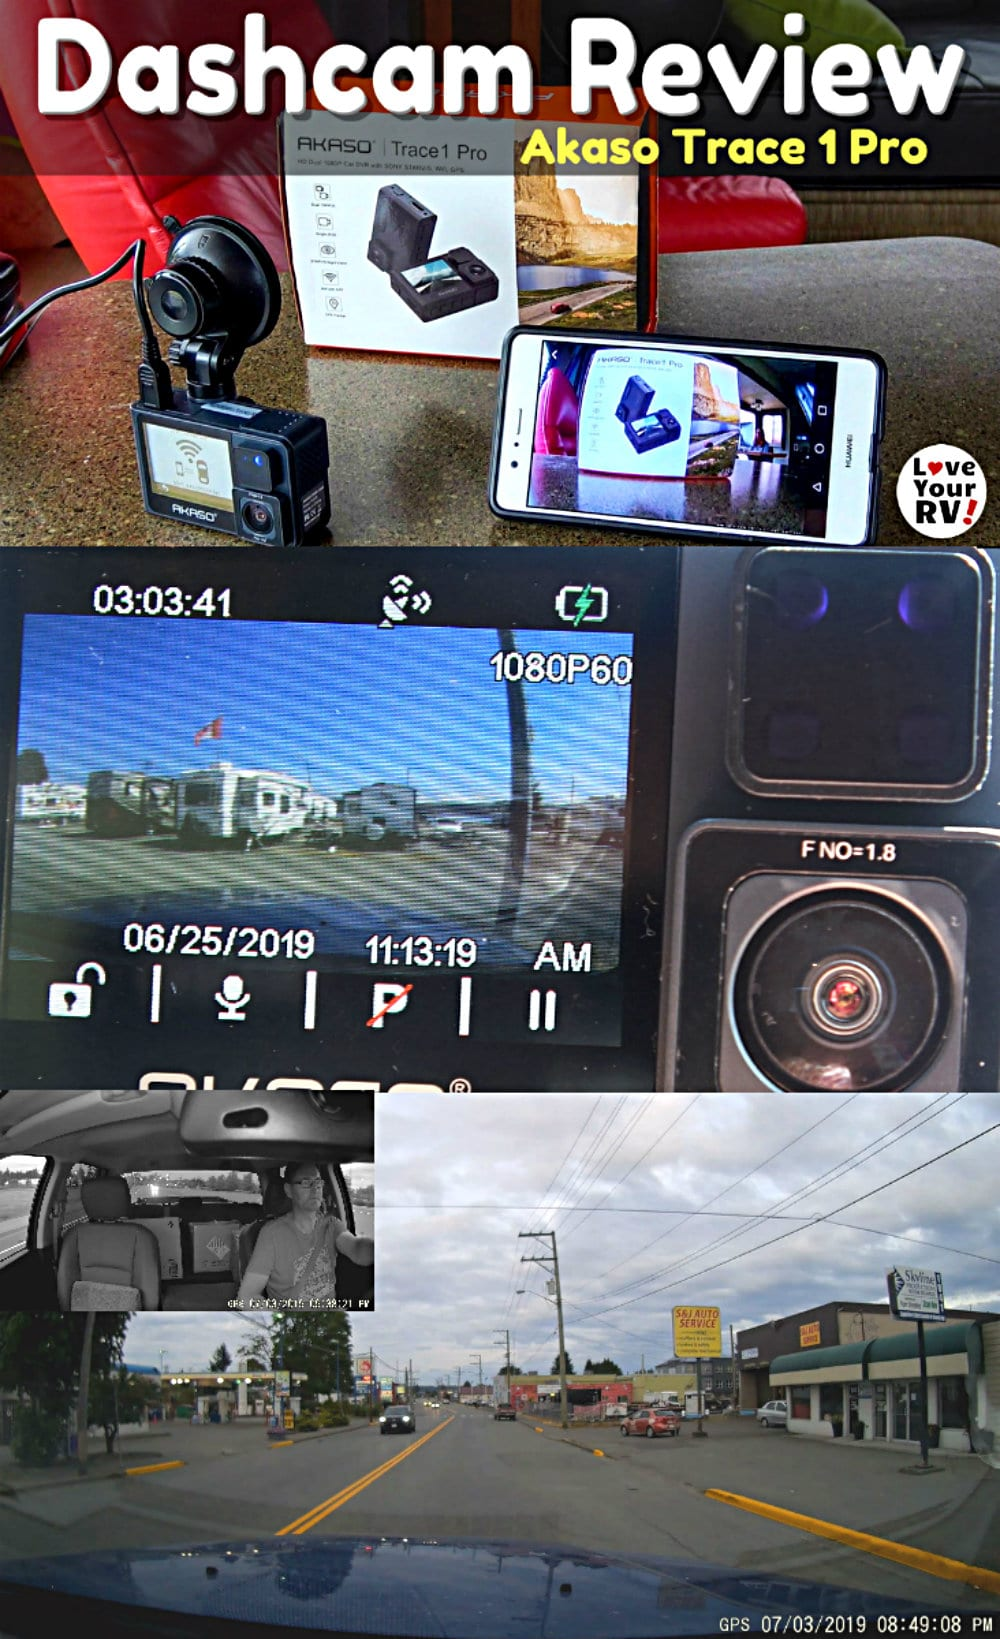 Review of the Akaso Trace 1 Pro Dash Cam with front and rear facing cameras but Love Your RV https://www.loveyourrv.com